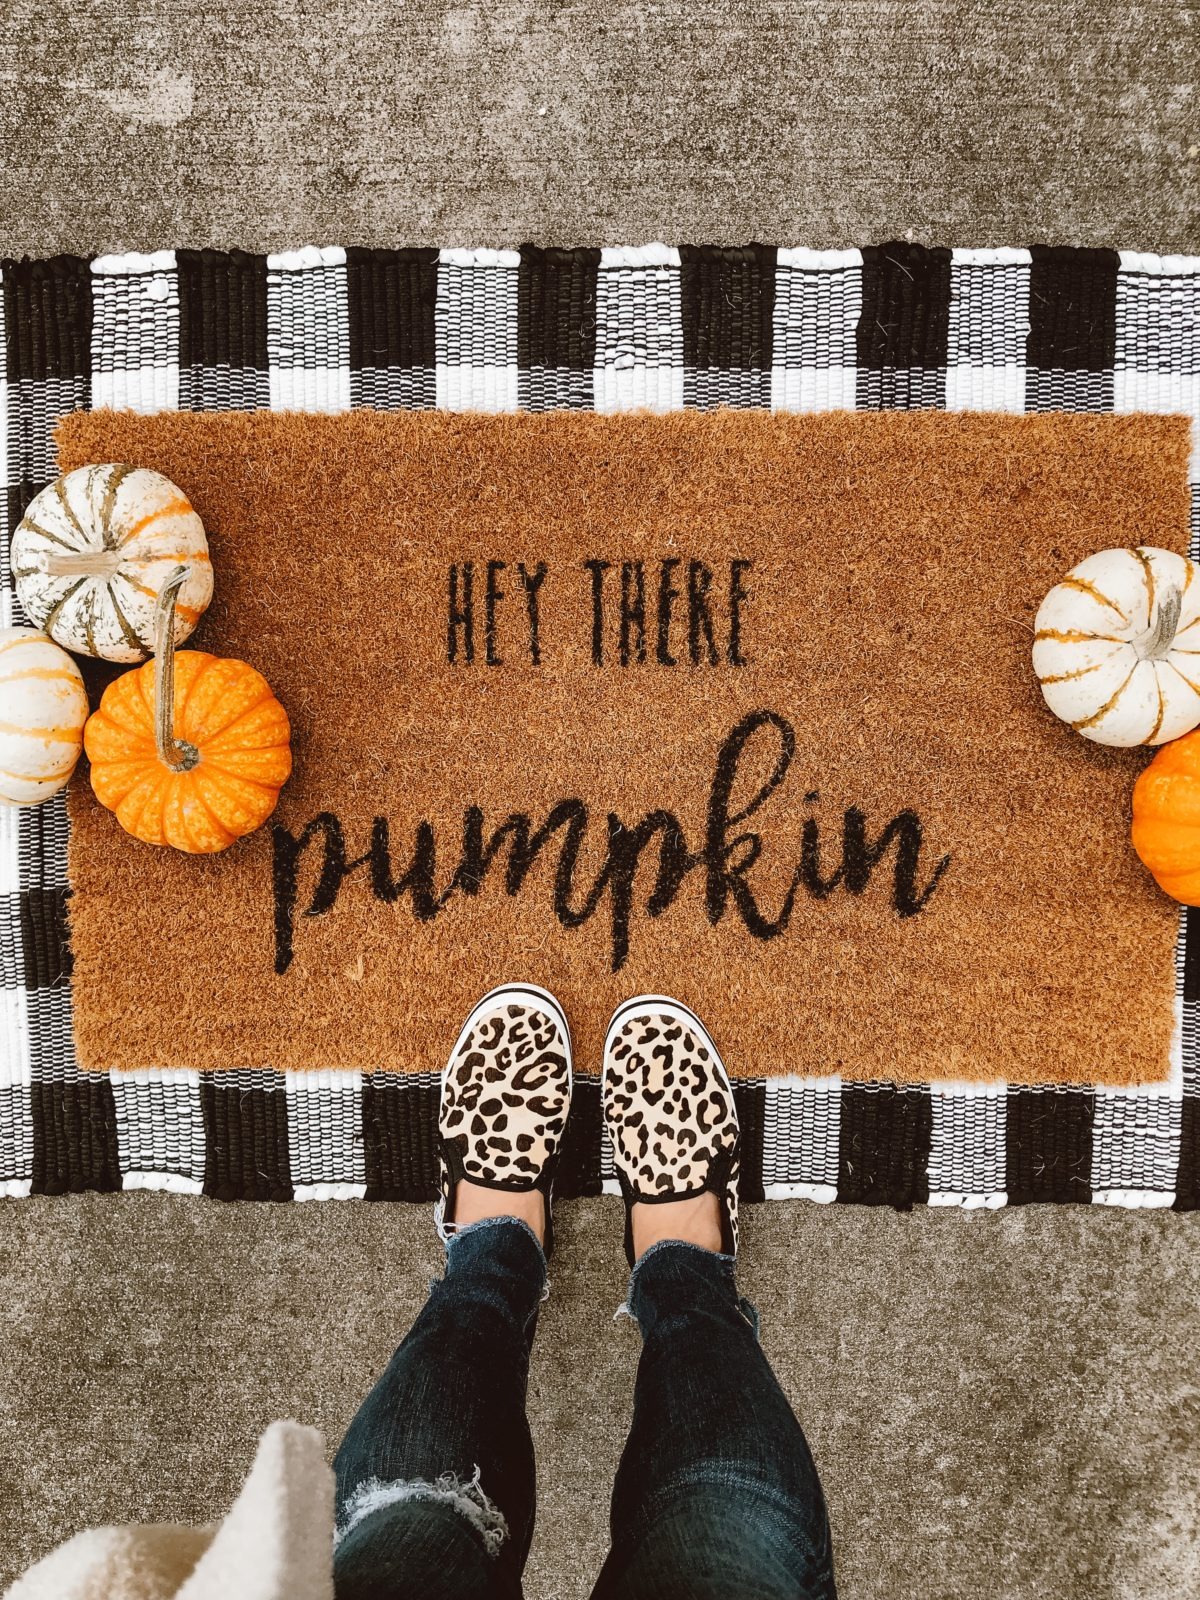 Hey There Pumpkin Mat with checkered mat